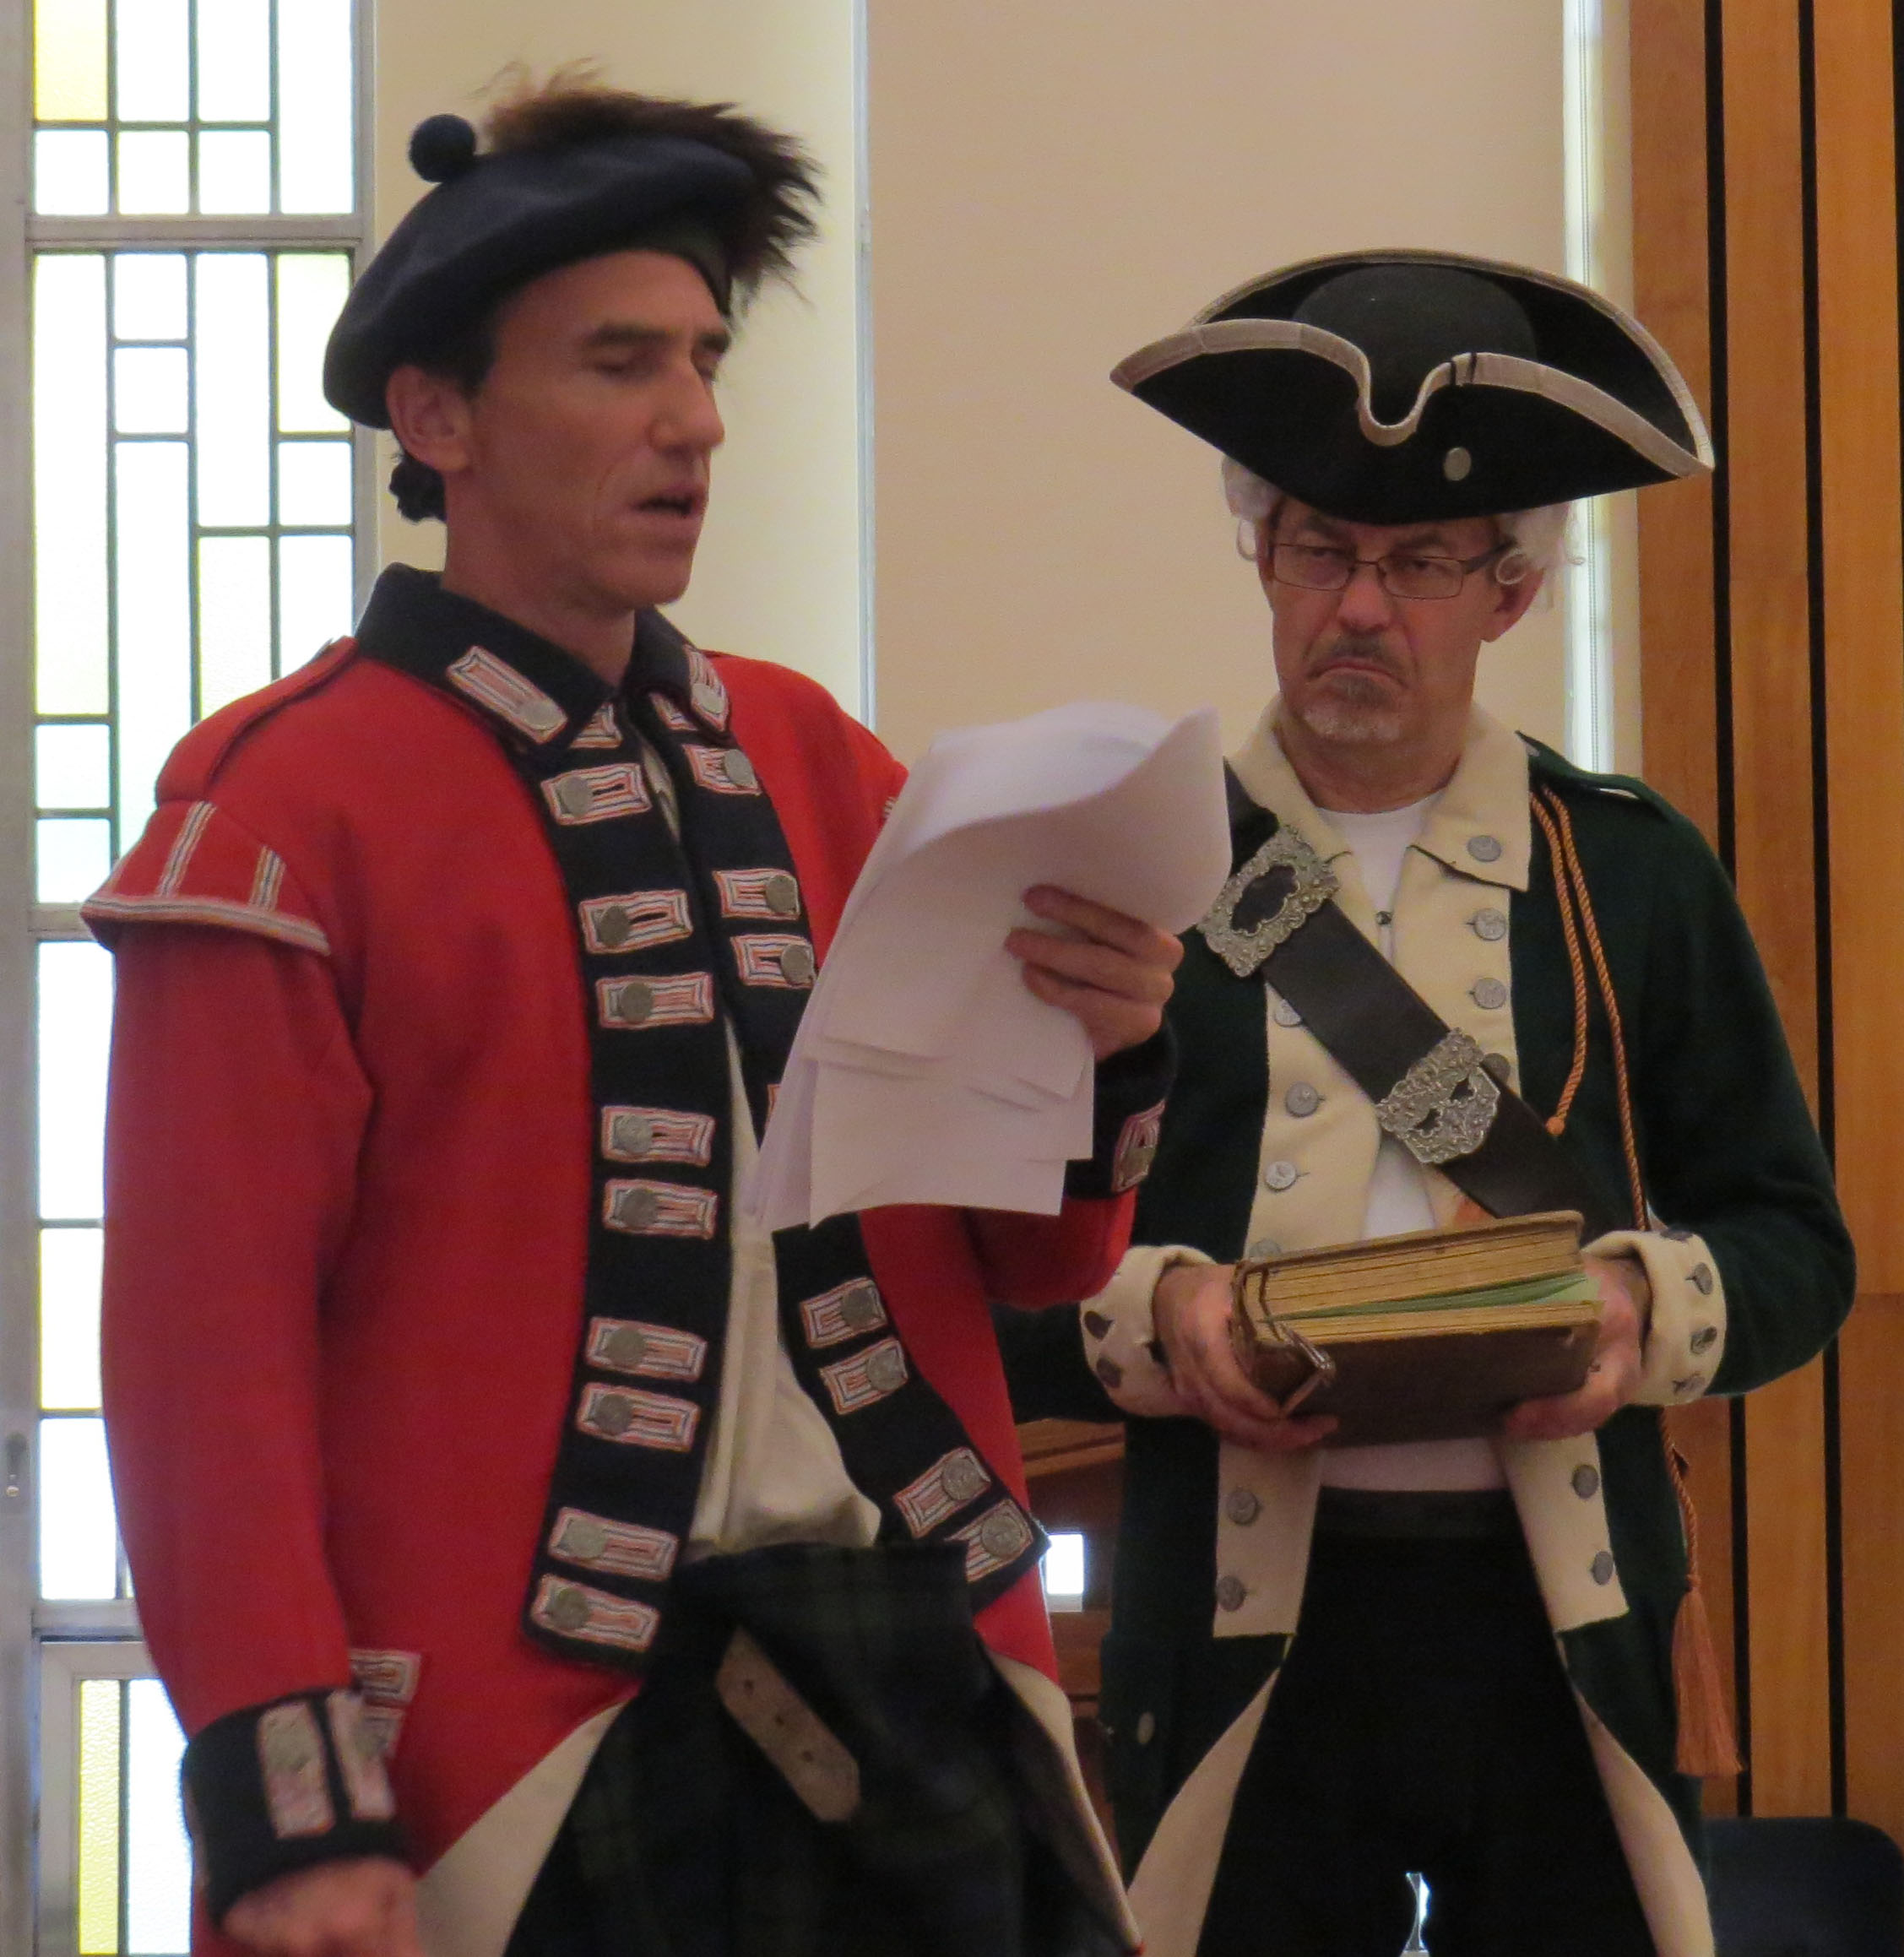 Stacy Septon as Loyalit soldier, Phillip Cooper as Col. Timothy Hierlihy